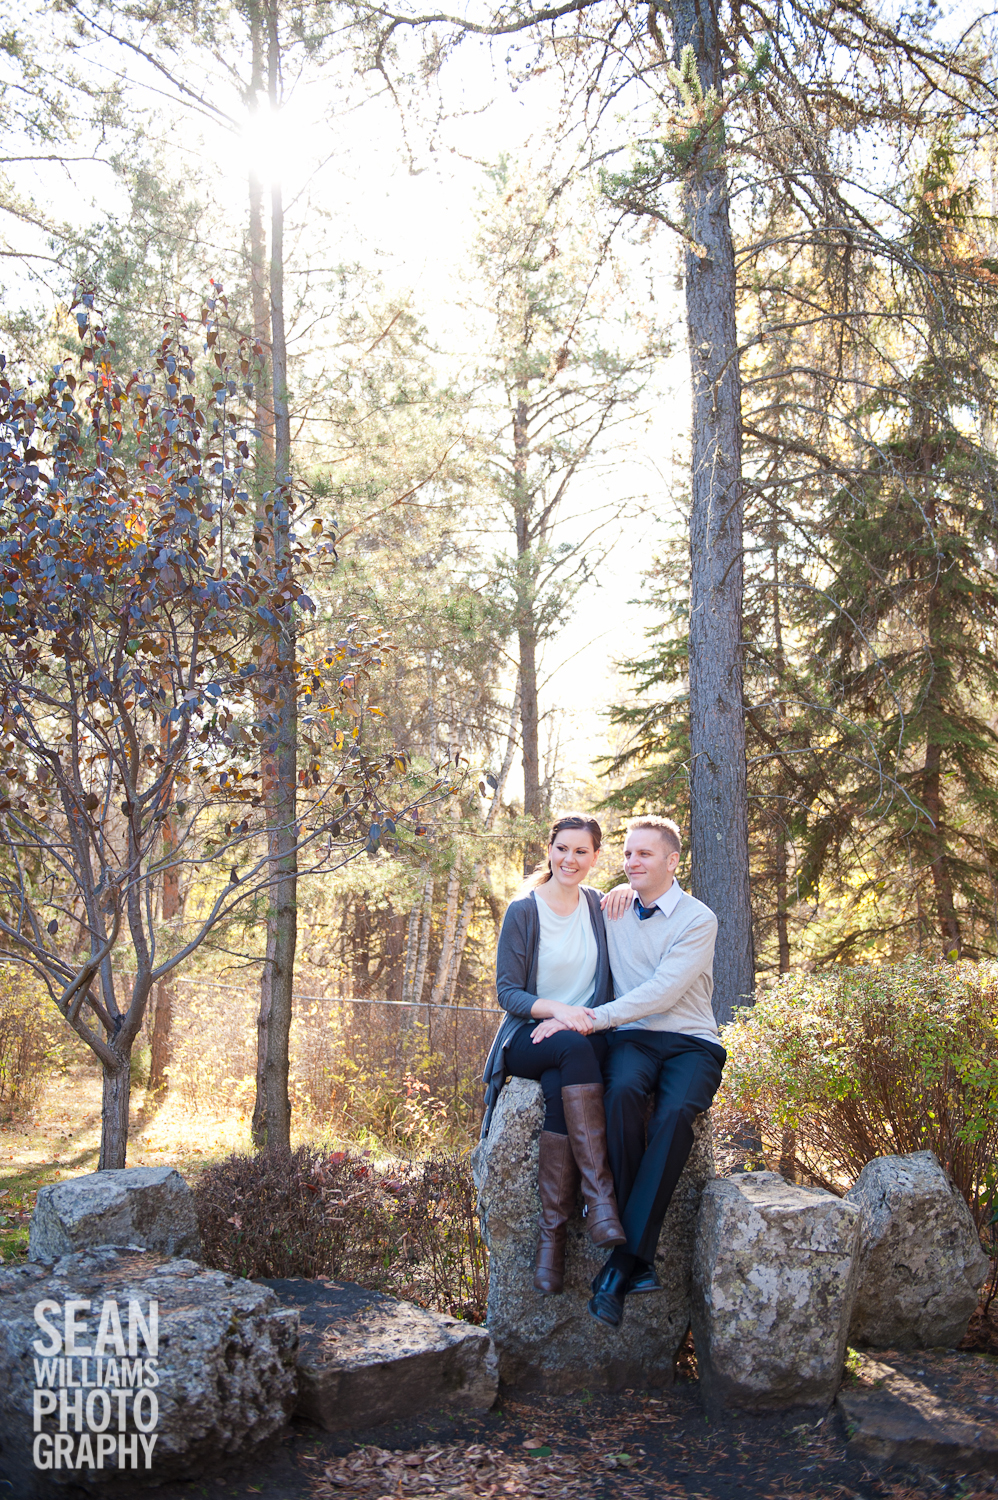 engagement-love-lifestyle-edmonton-photgrapher-sean-williams-1-3.jpg